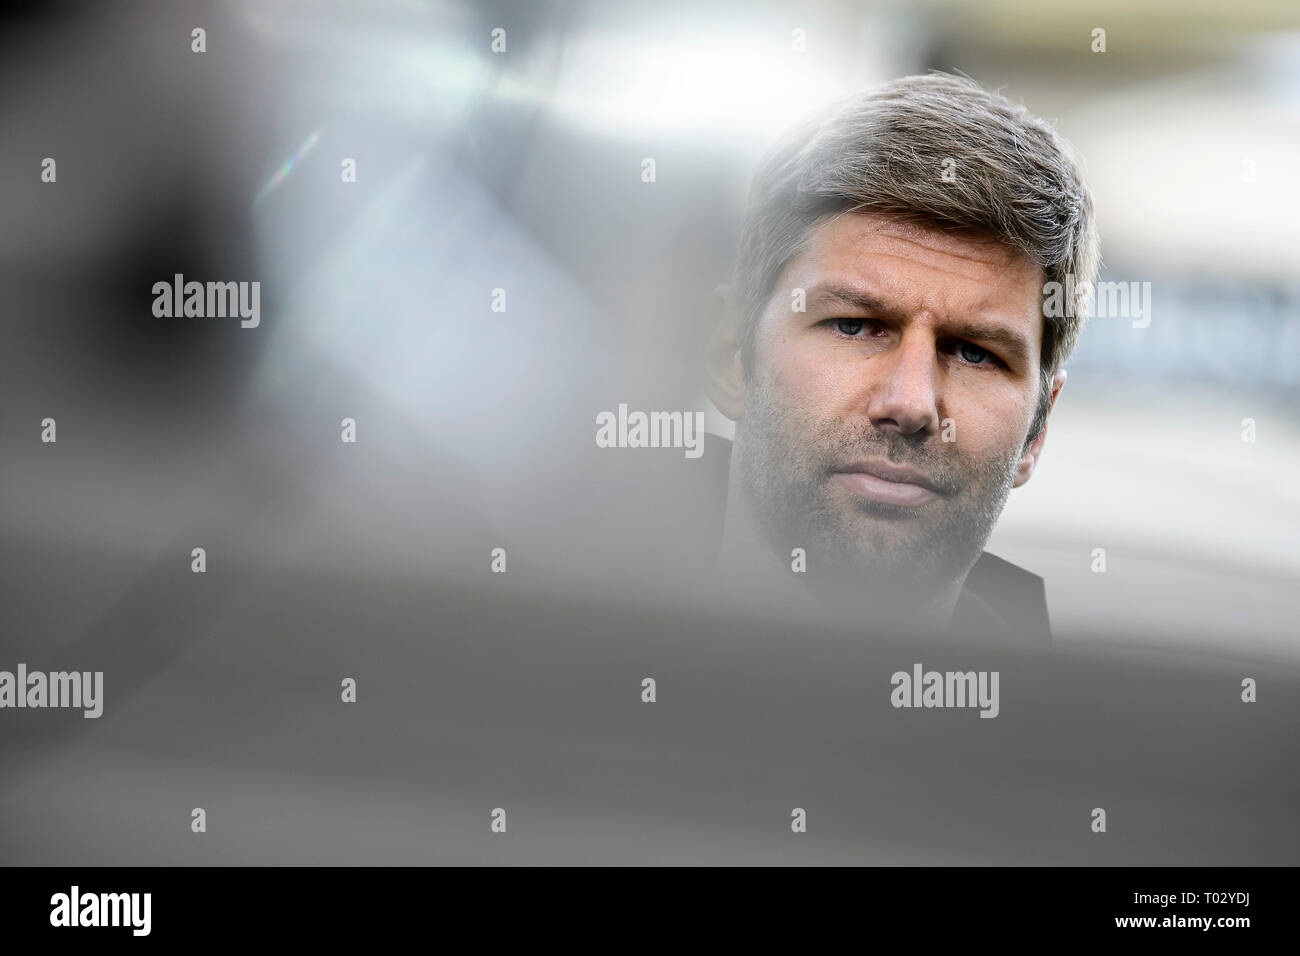 Sport Board Thomas Hitzlsperger (VfB Stuttgart), portrait, portrait, head. GES/Football/1. Bundesliga: VFB Stuttgart - TSG Hoffenheim, 16.03.2019 - Football/Soccer 1st Division: VFB Stuttgart vs TSG Hoffenheim, Stuttgart, Mar 16, 2019 - DFL regulations prohibit any use of photographs as image sequences and/or quasi-video. | usage worldwide Stock Photo